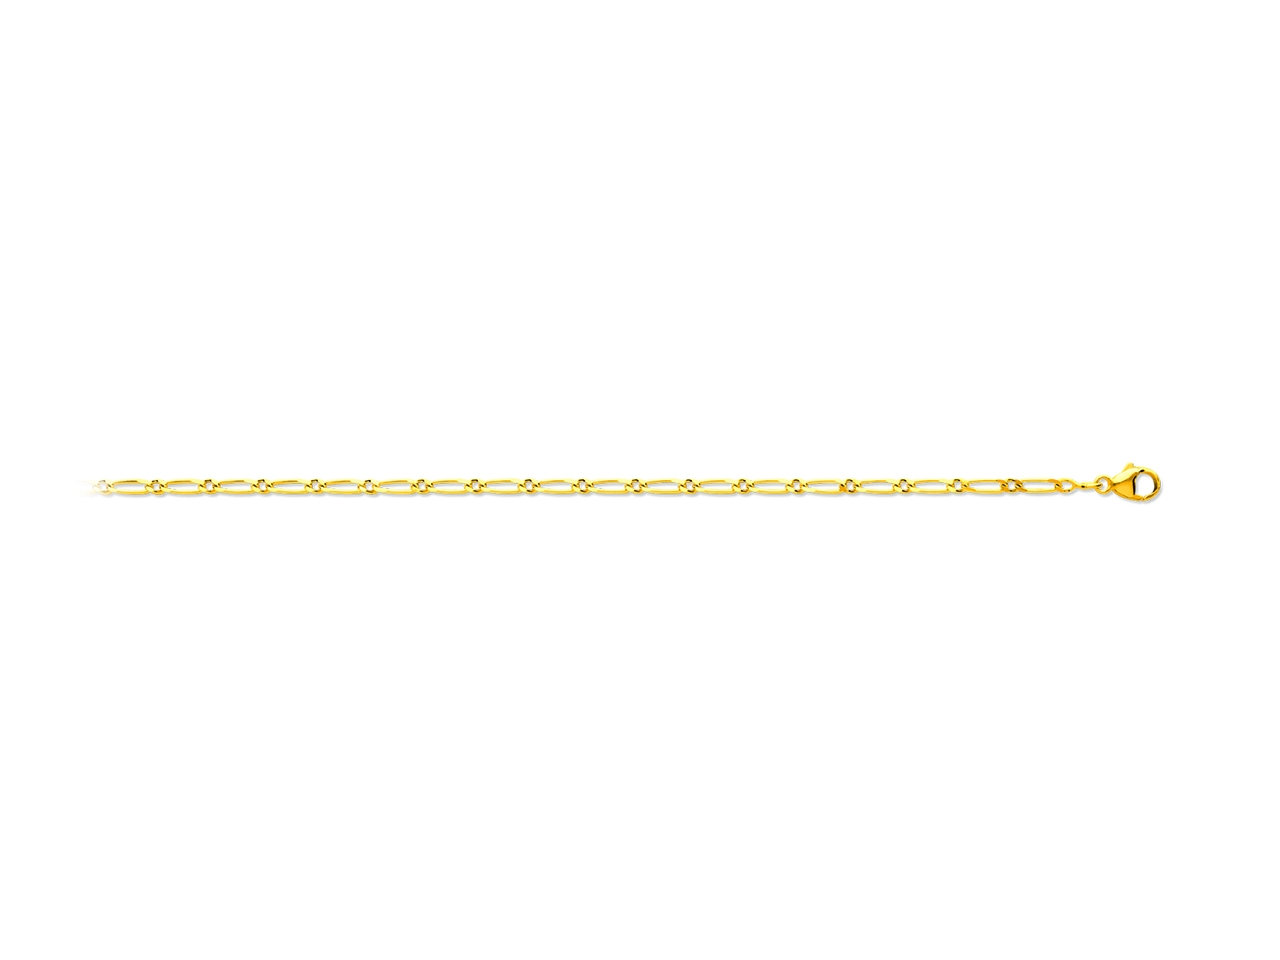 Collier maille alternée 1/1, Or jaune 18k, 2 mm, 50 cm